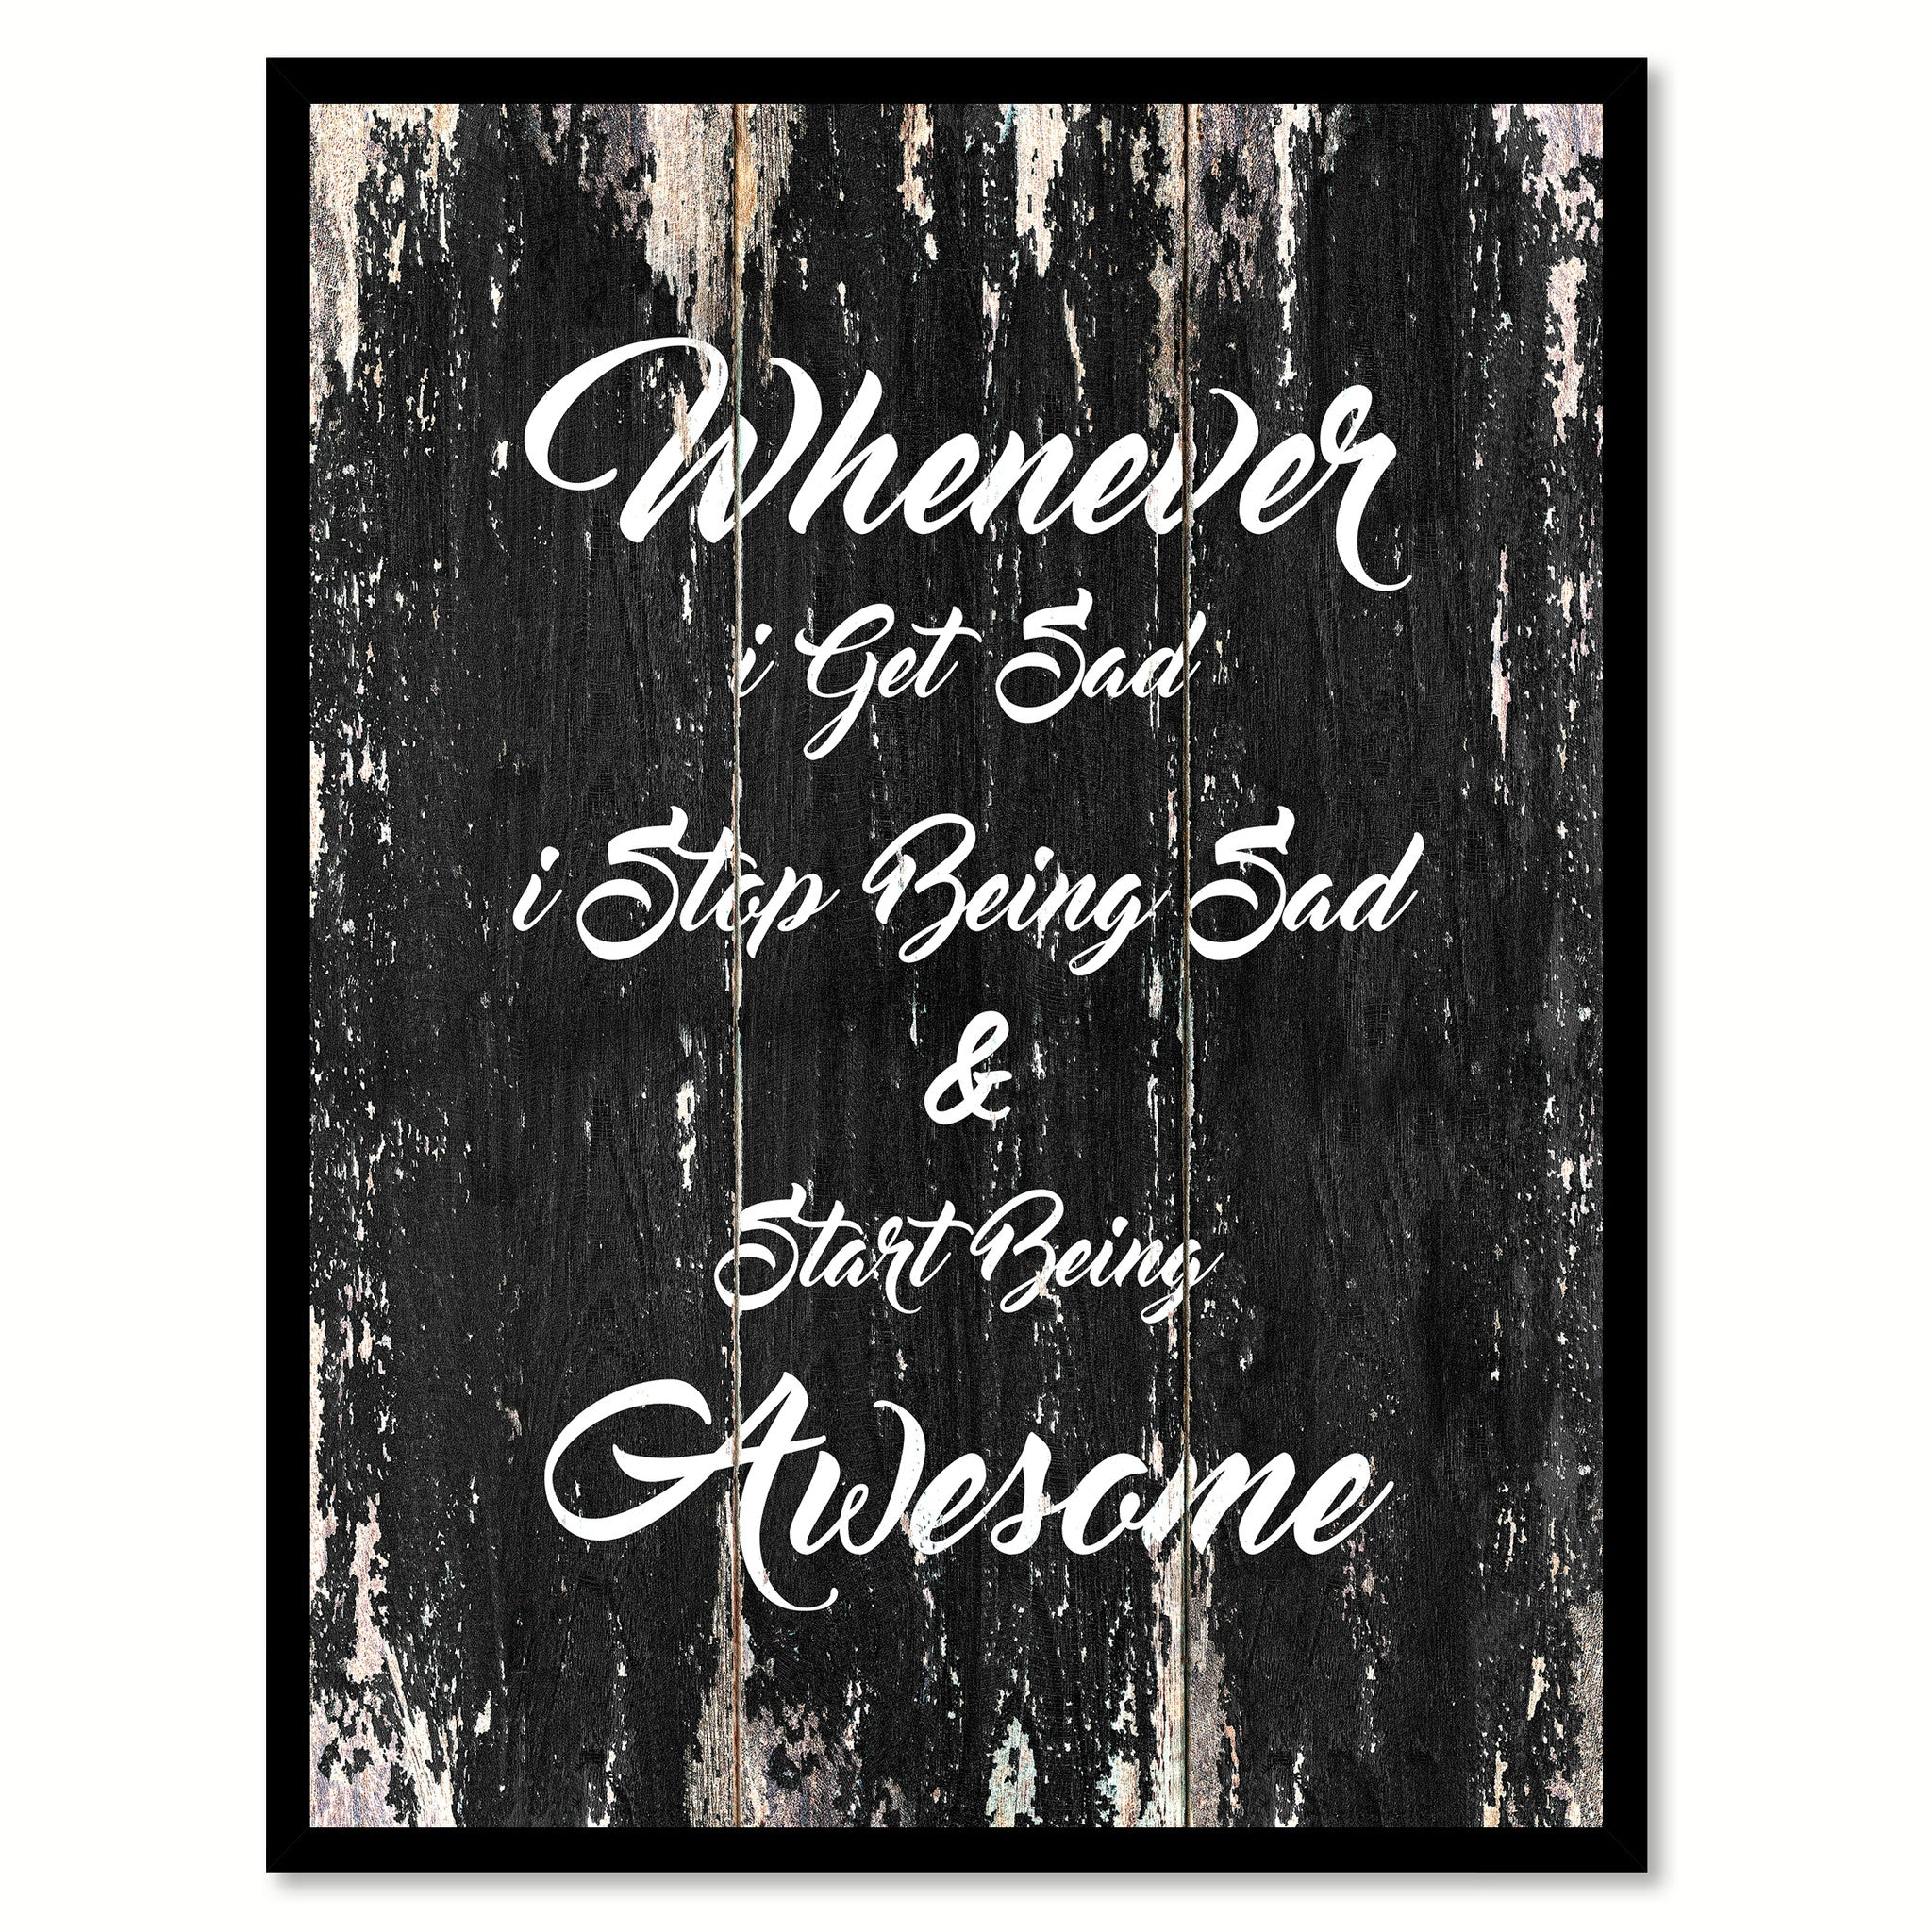 Whenever I get sad I stop being sad & start being awesome Motivational Quote Saying Canvas Print with Picture Frame Home Decor Wall Art